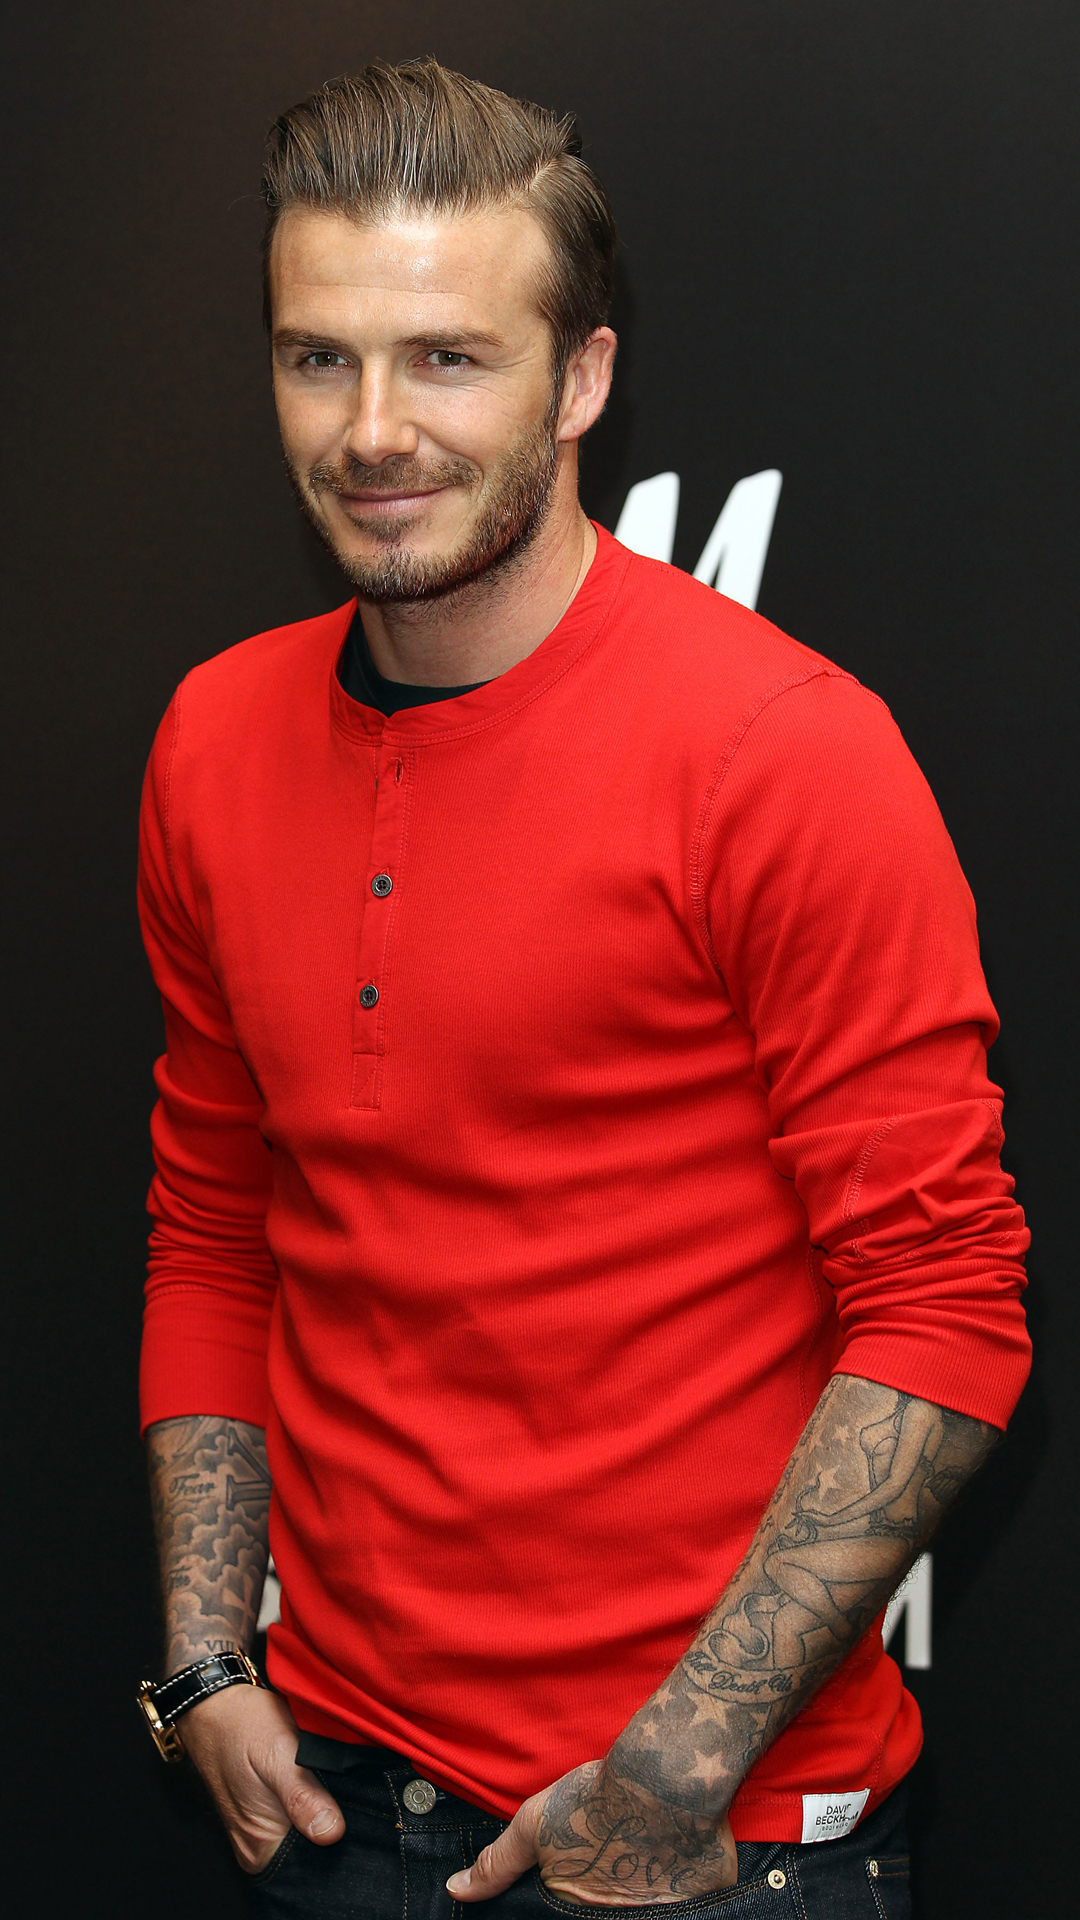 David Beckham Best Htc One Wallpapers Free And Easy To Download